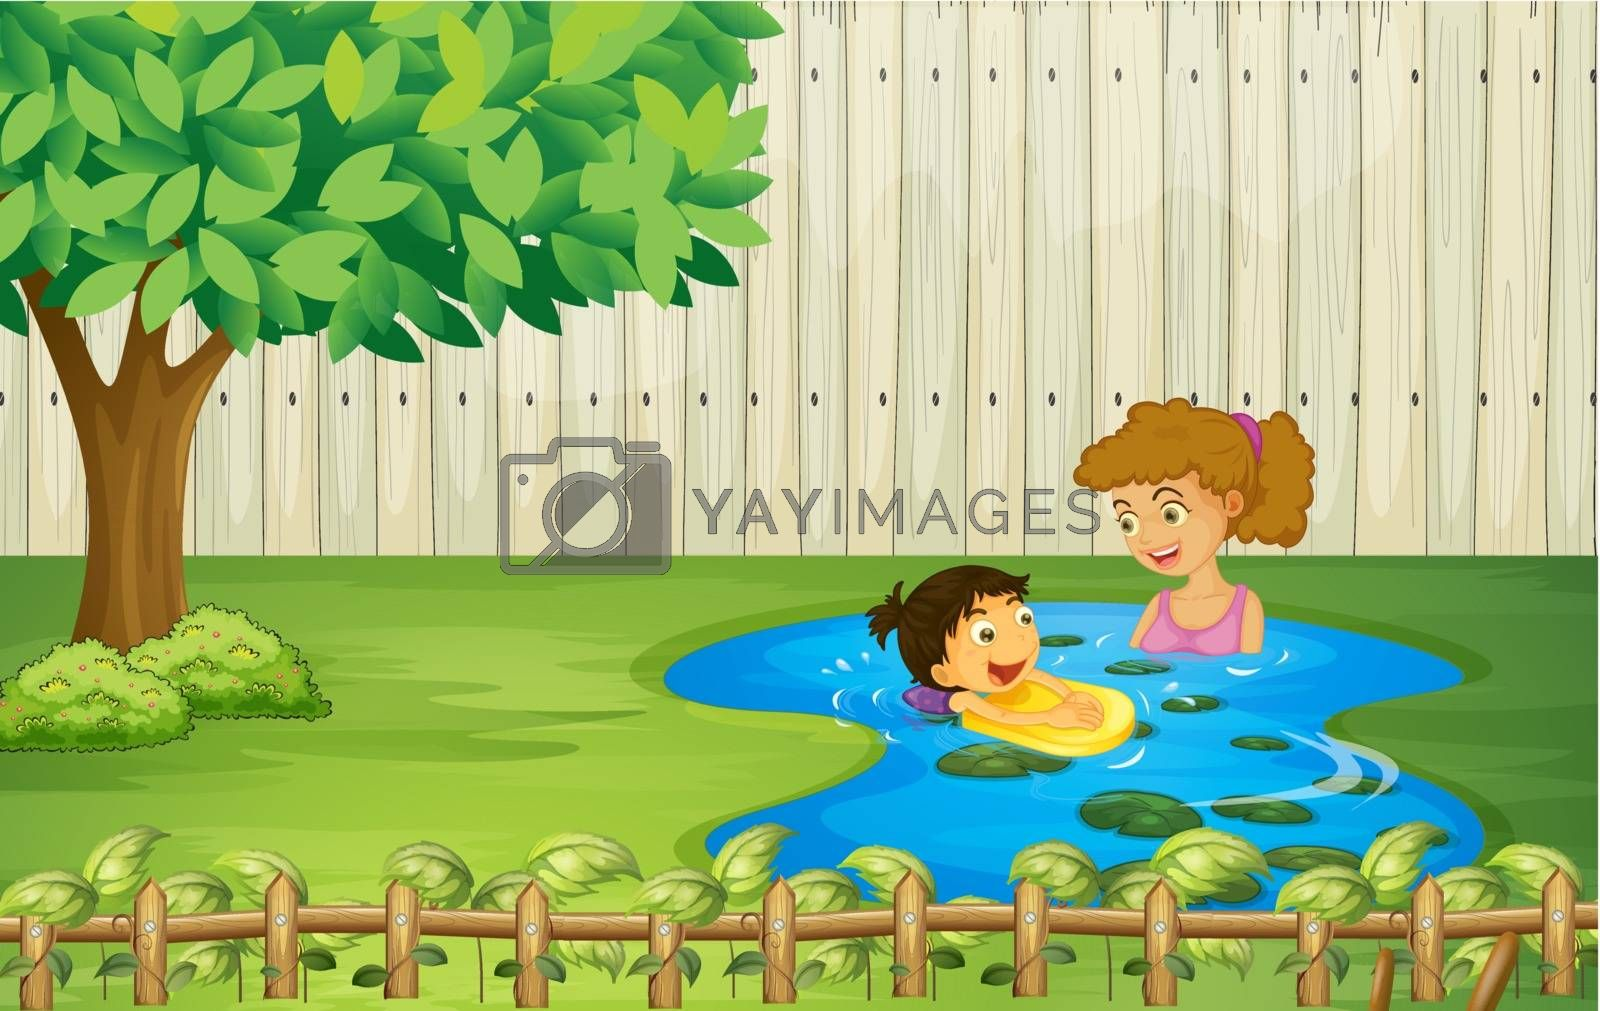 Illustration of kids swimming in a pond